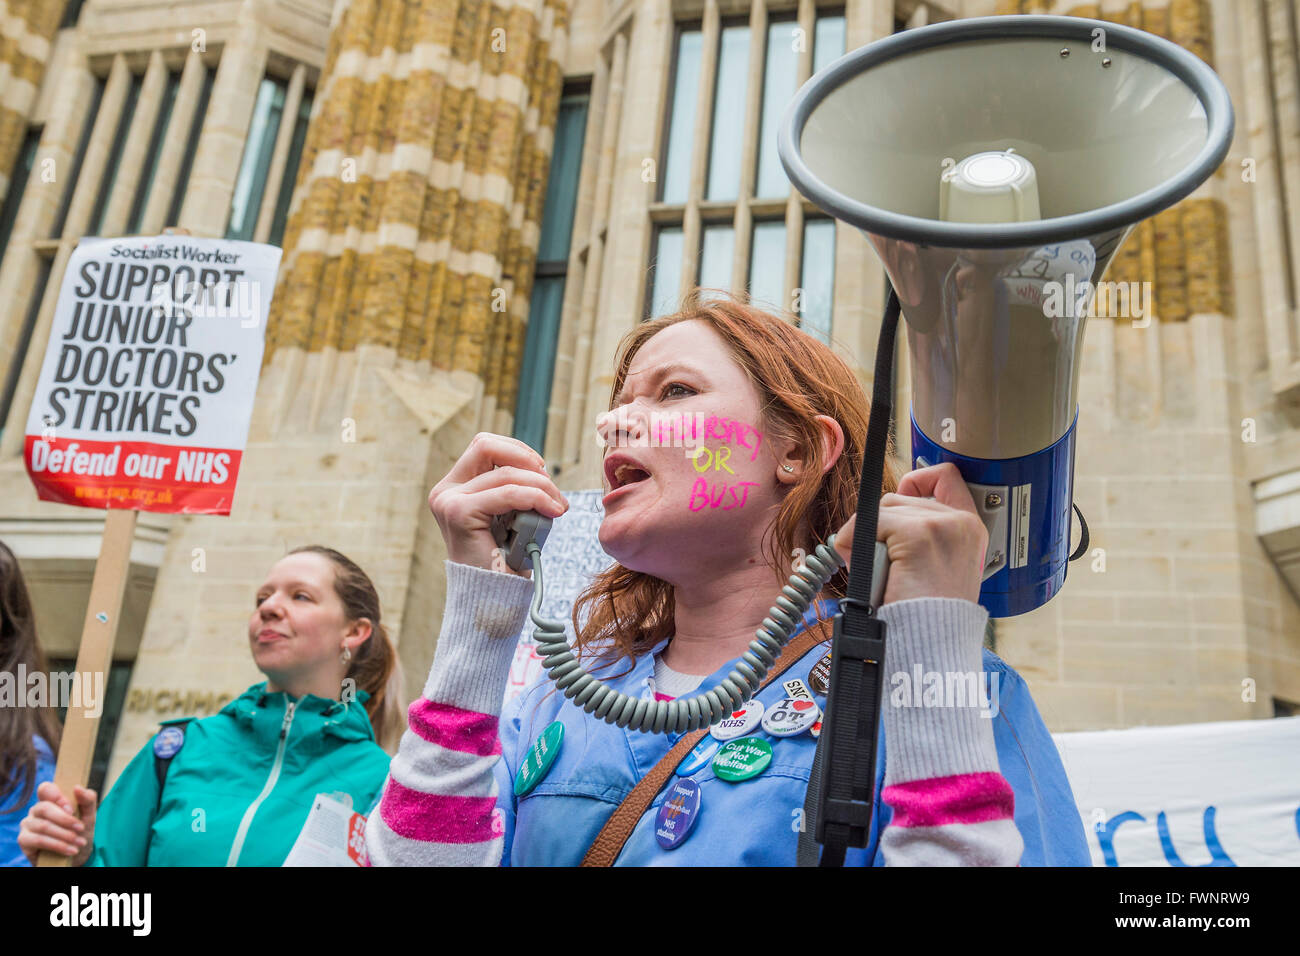 Whitehall, London, UK. 6th April, 2016. Nurses and doctors march on the department of health in Whitehall - The - Stock Image